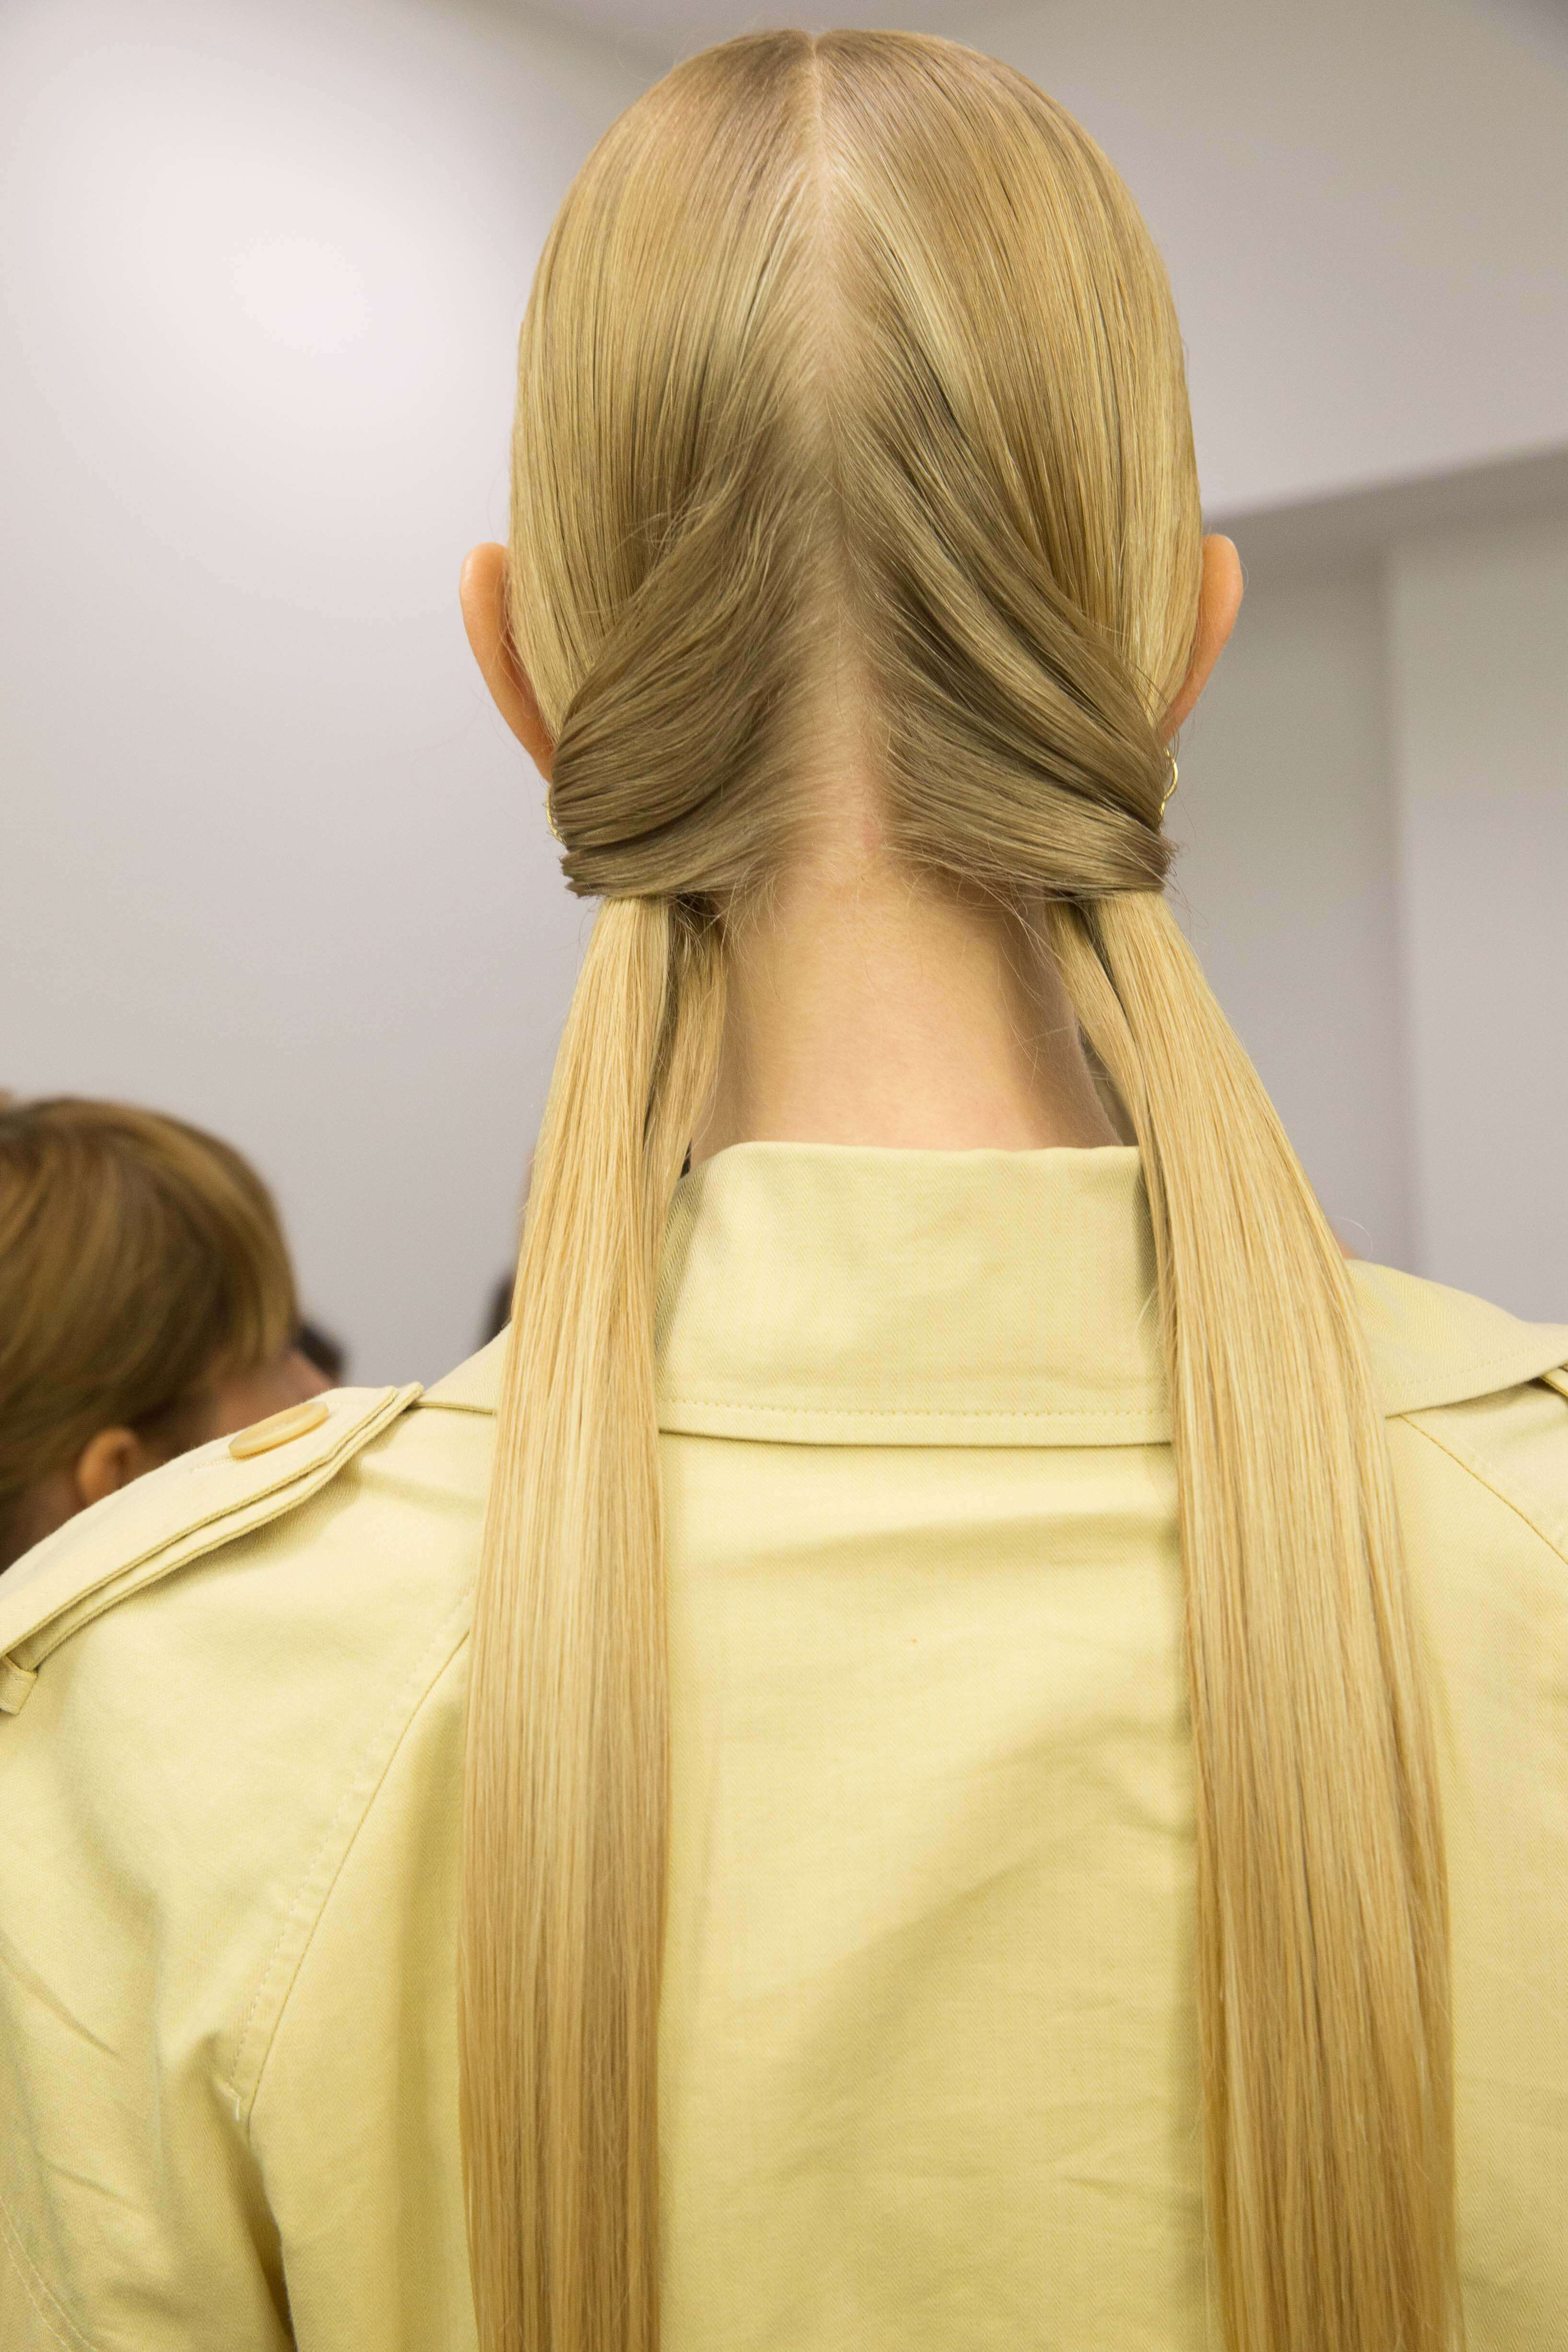 model with blonde hair wearing two straight pigtails